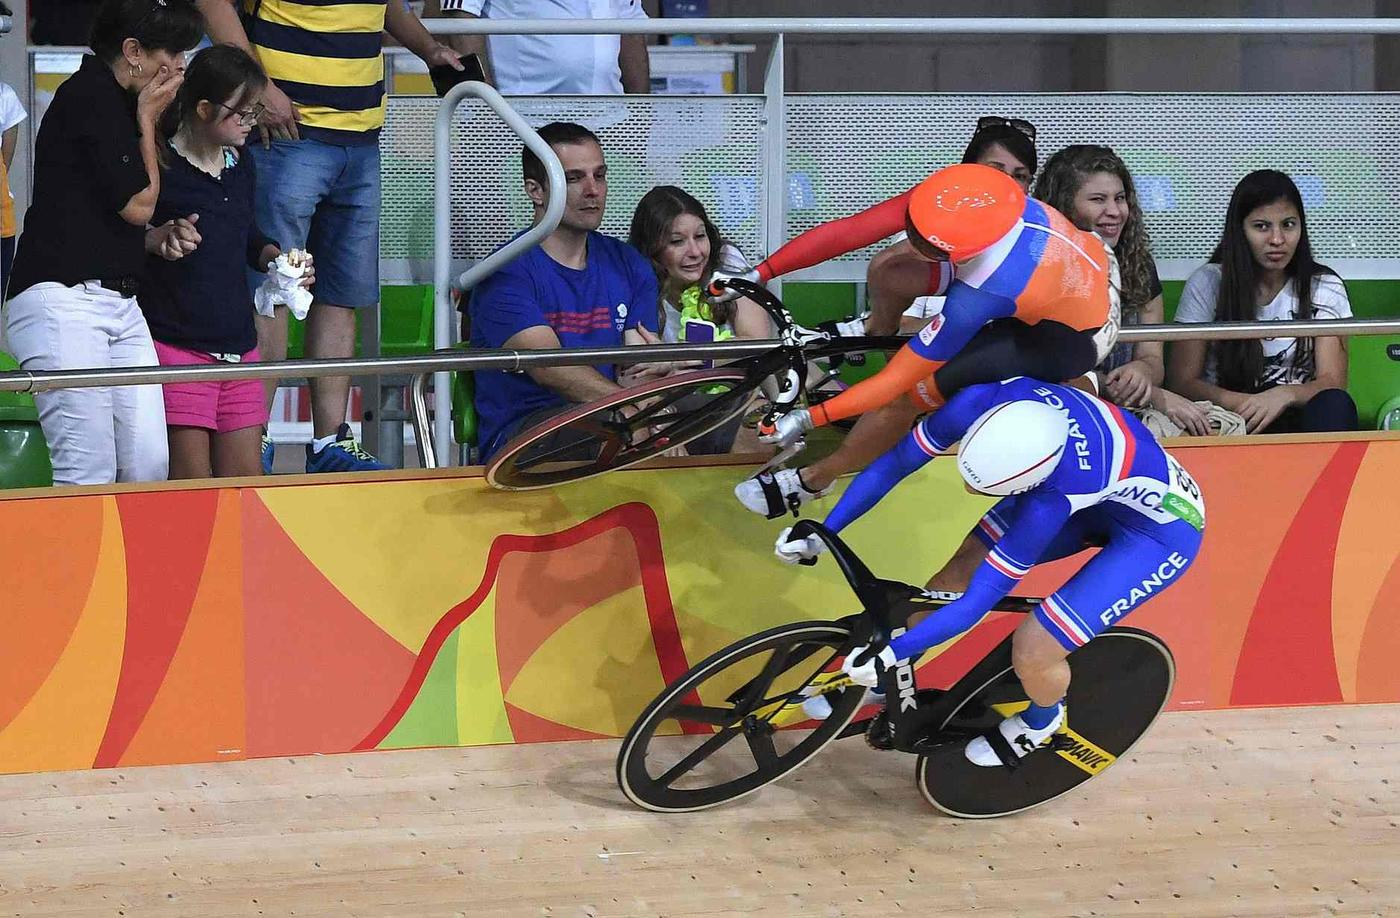 A Great Photo of Laurine van Riessen's Wall Ride